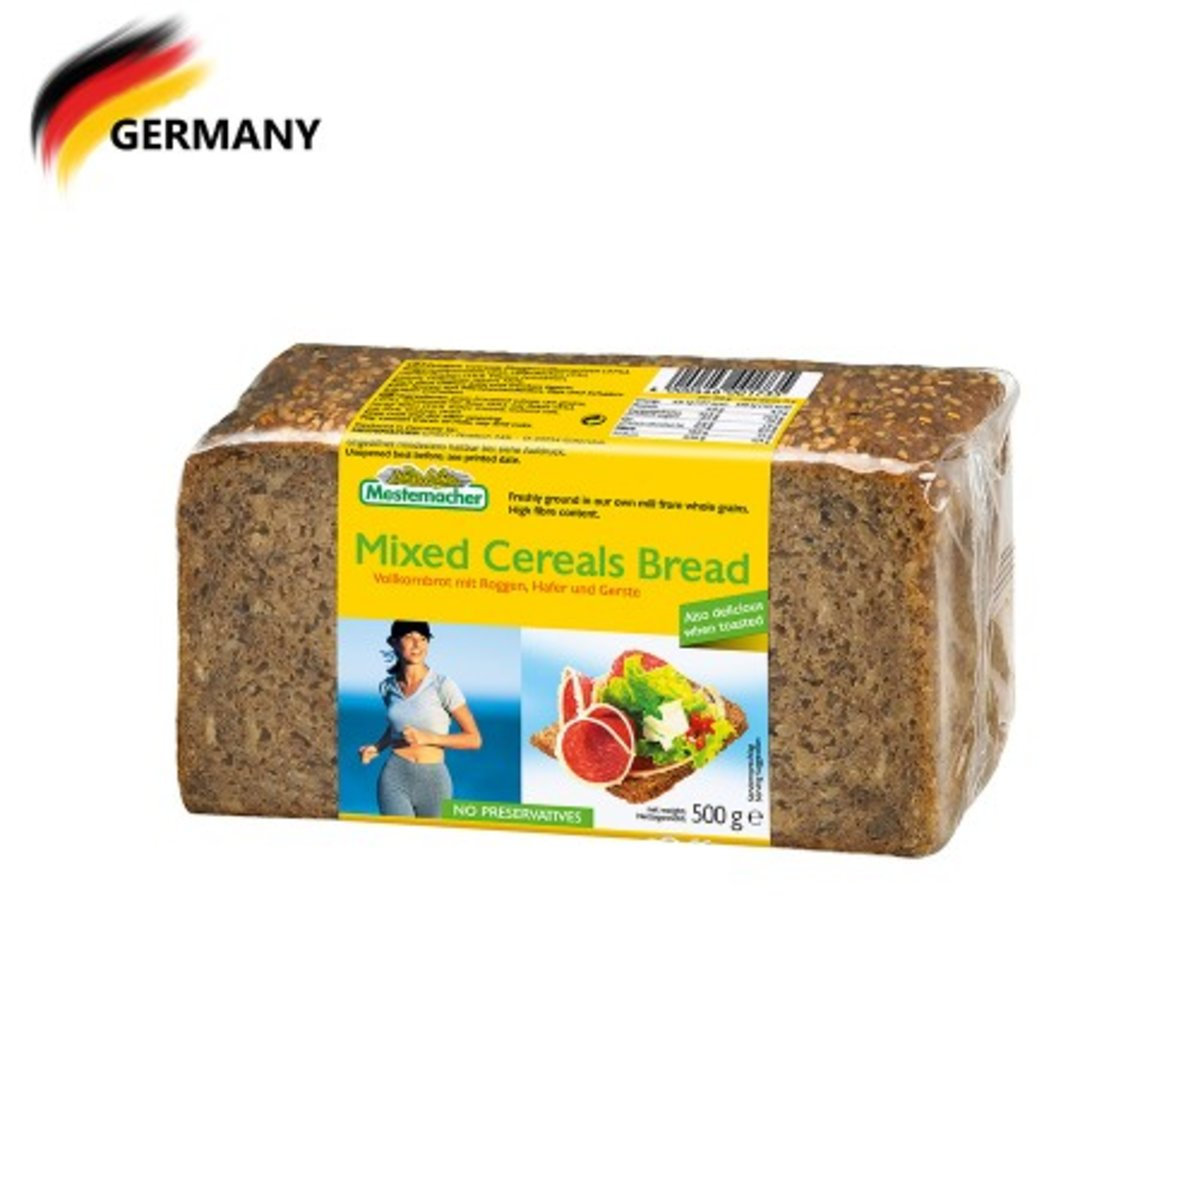 Mixed Cereals Bread 500G (best before date: 01/08/19)